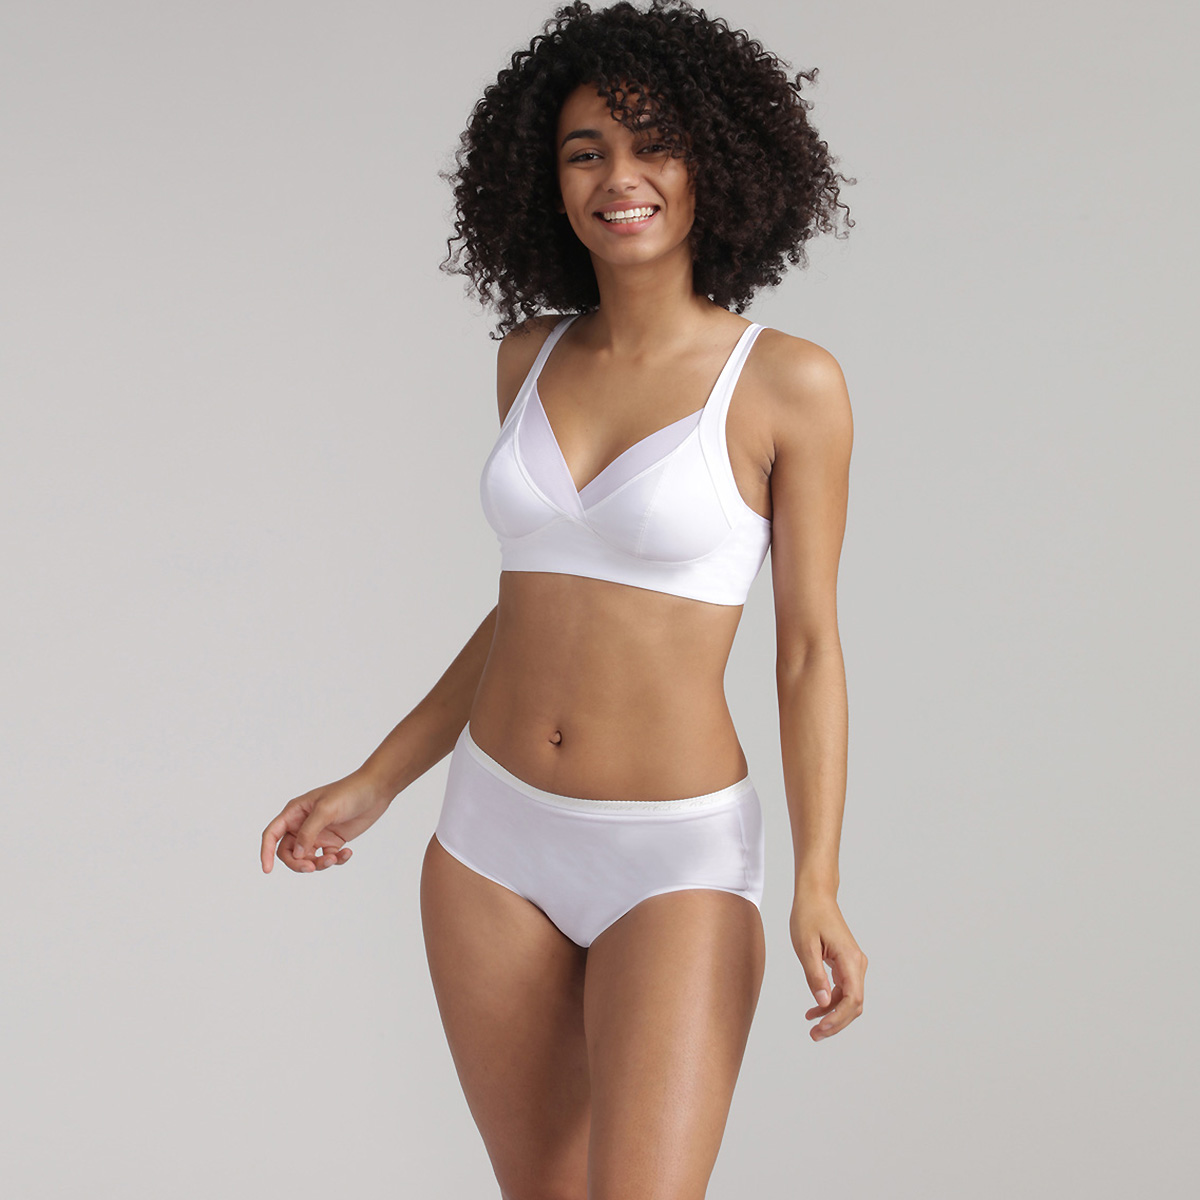 Reggiseno senza ferretto bianco - Feel Good Support, , PLAYTEX